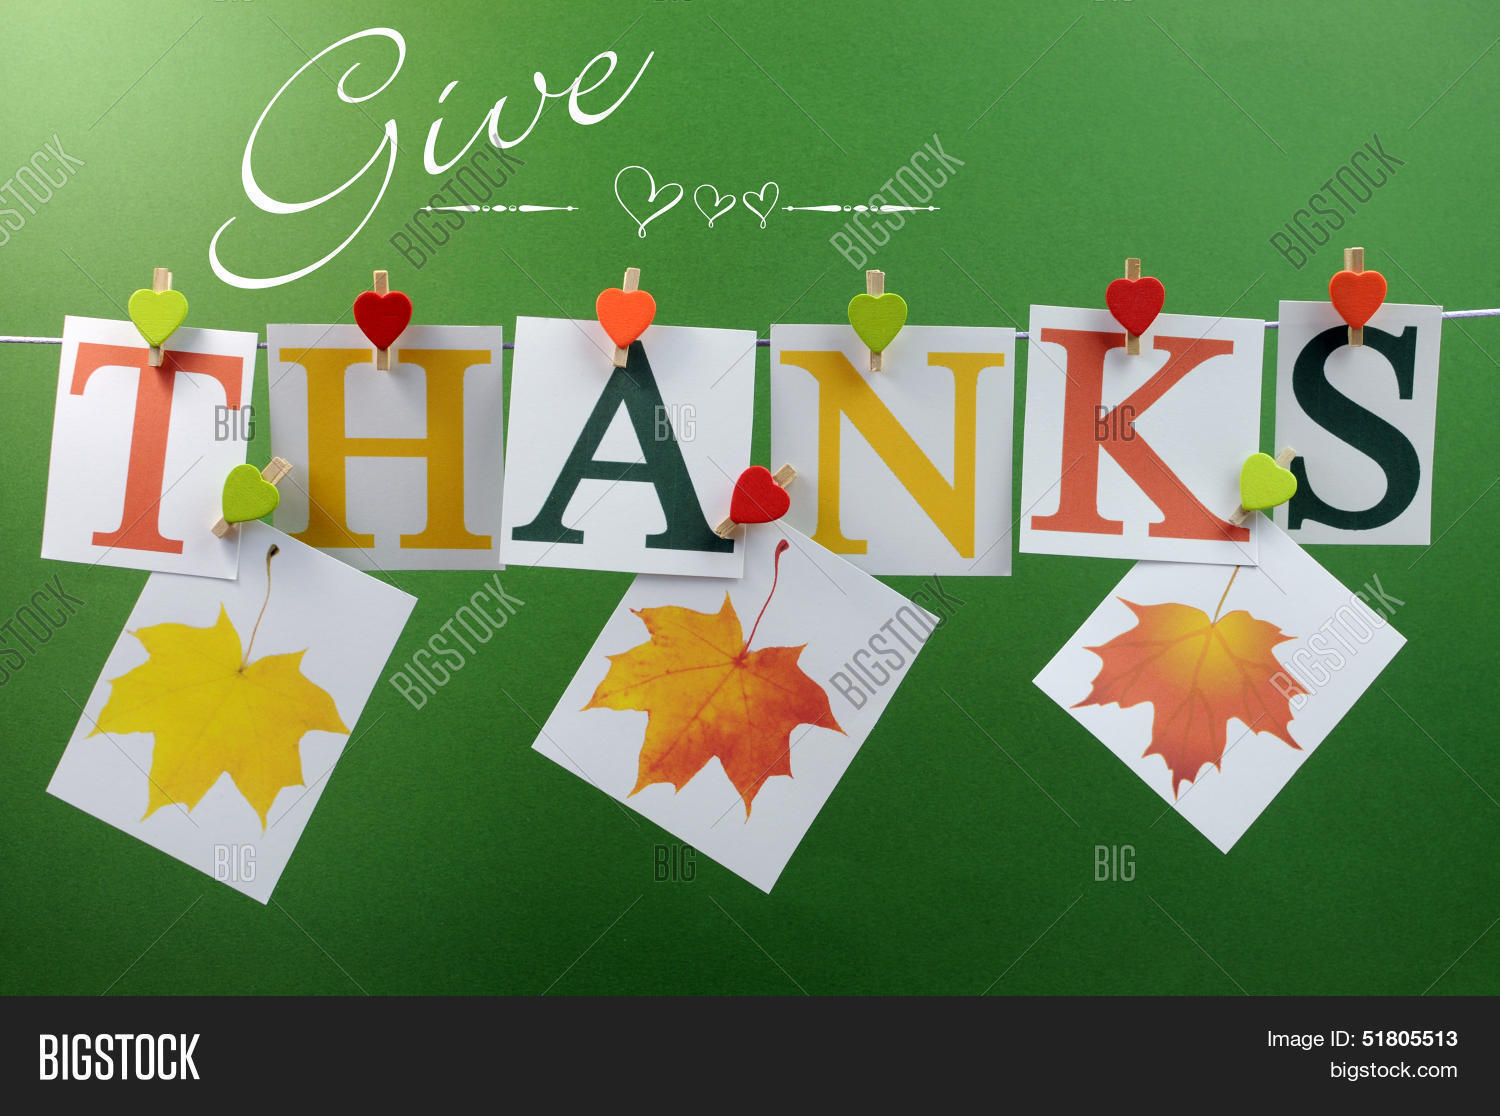 Give Thanks Message Image Photo Free Trial Bigstock